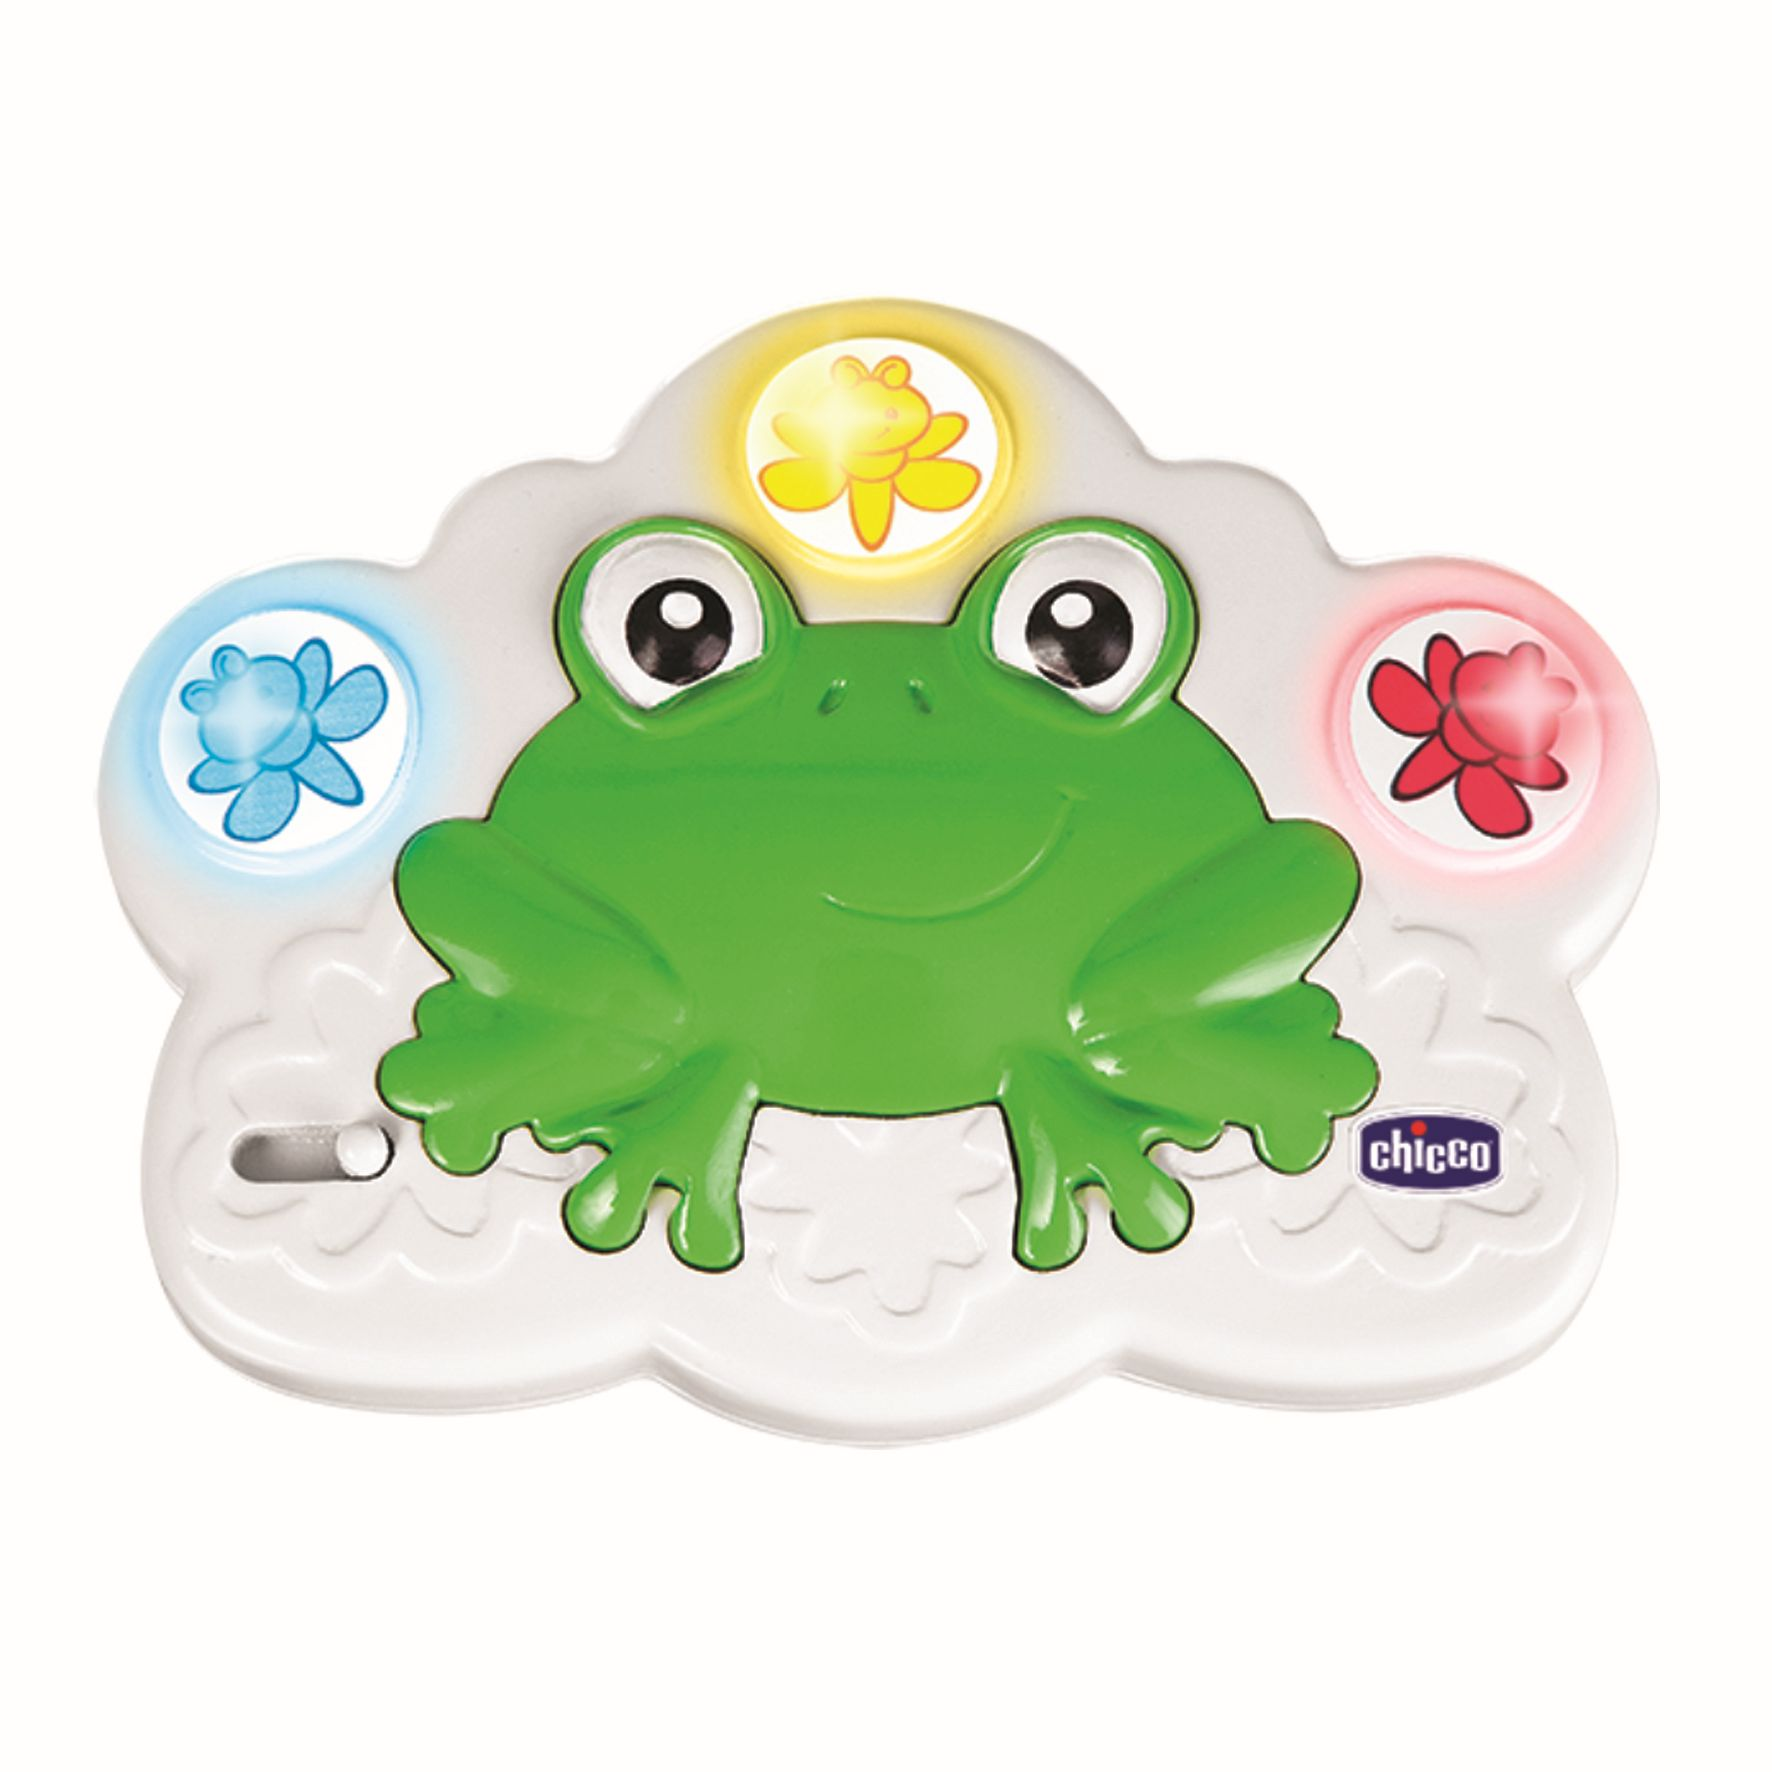 Chicco Play Mat Musical Jungle - Buy at kidsroom   Toys   Baby Toys